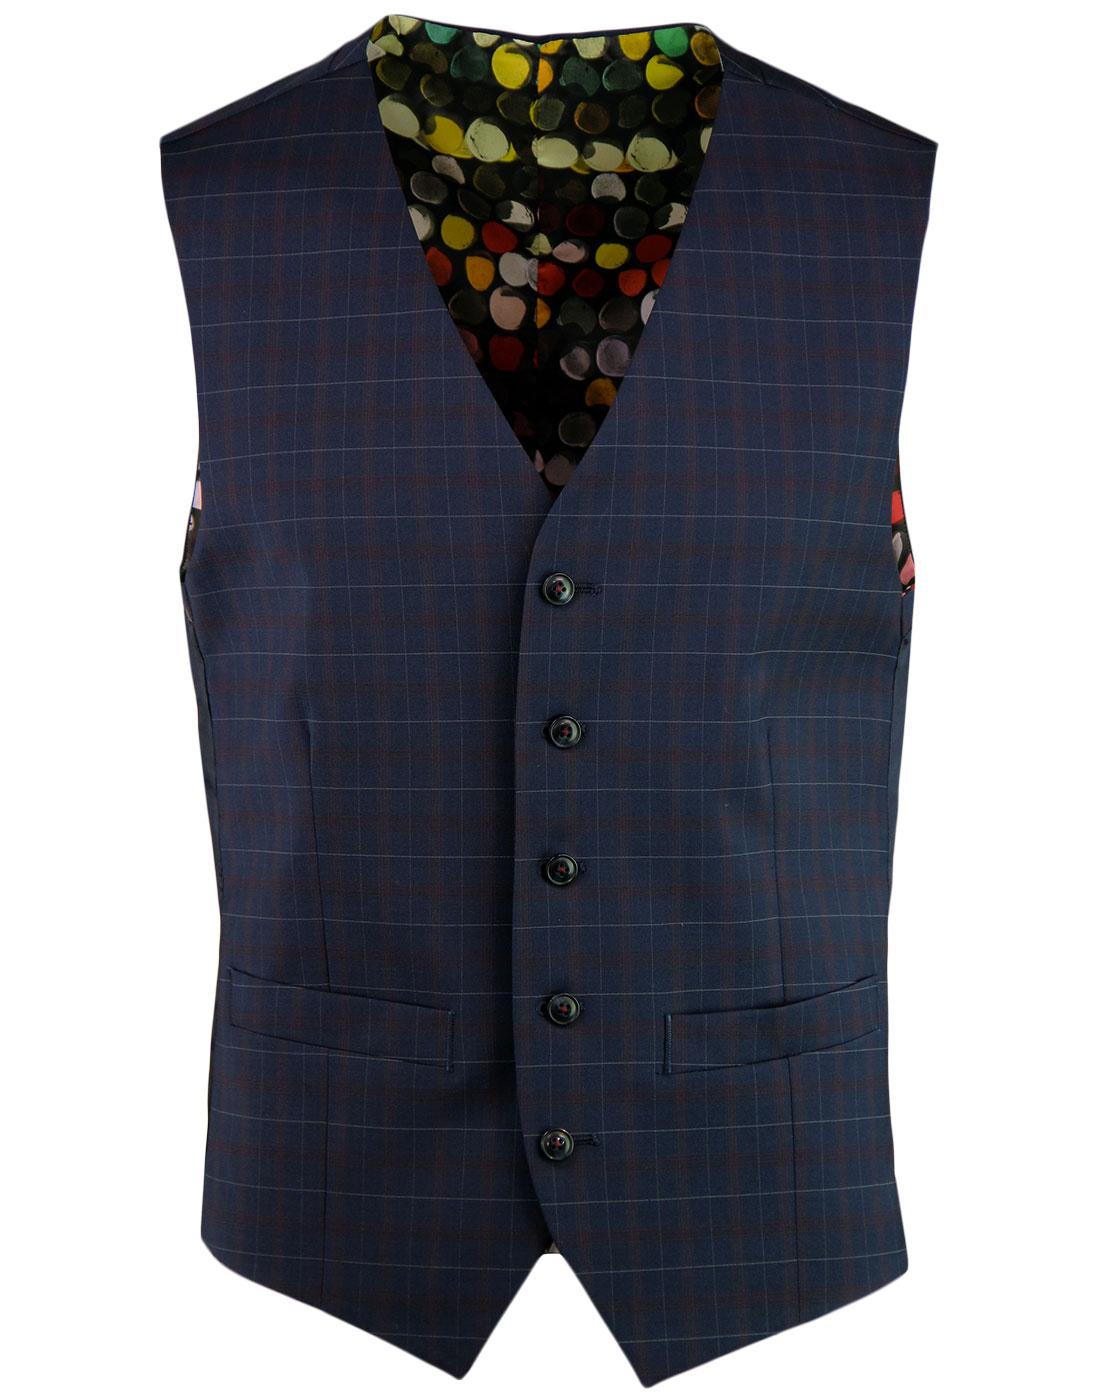 Marriott GIBSON LONDON Mod Tartan V-Neck Waistcoat